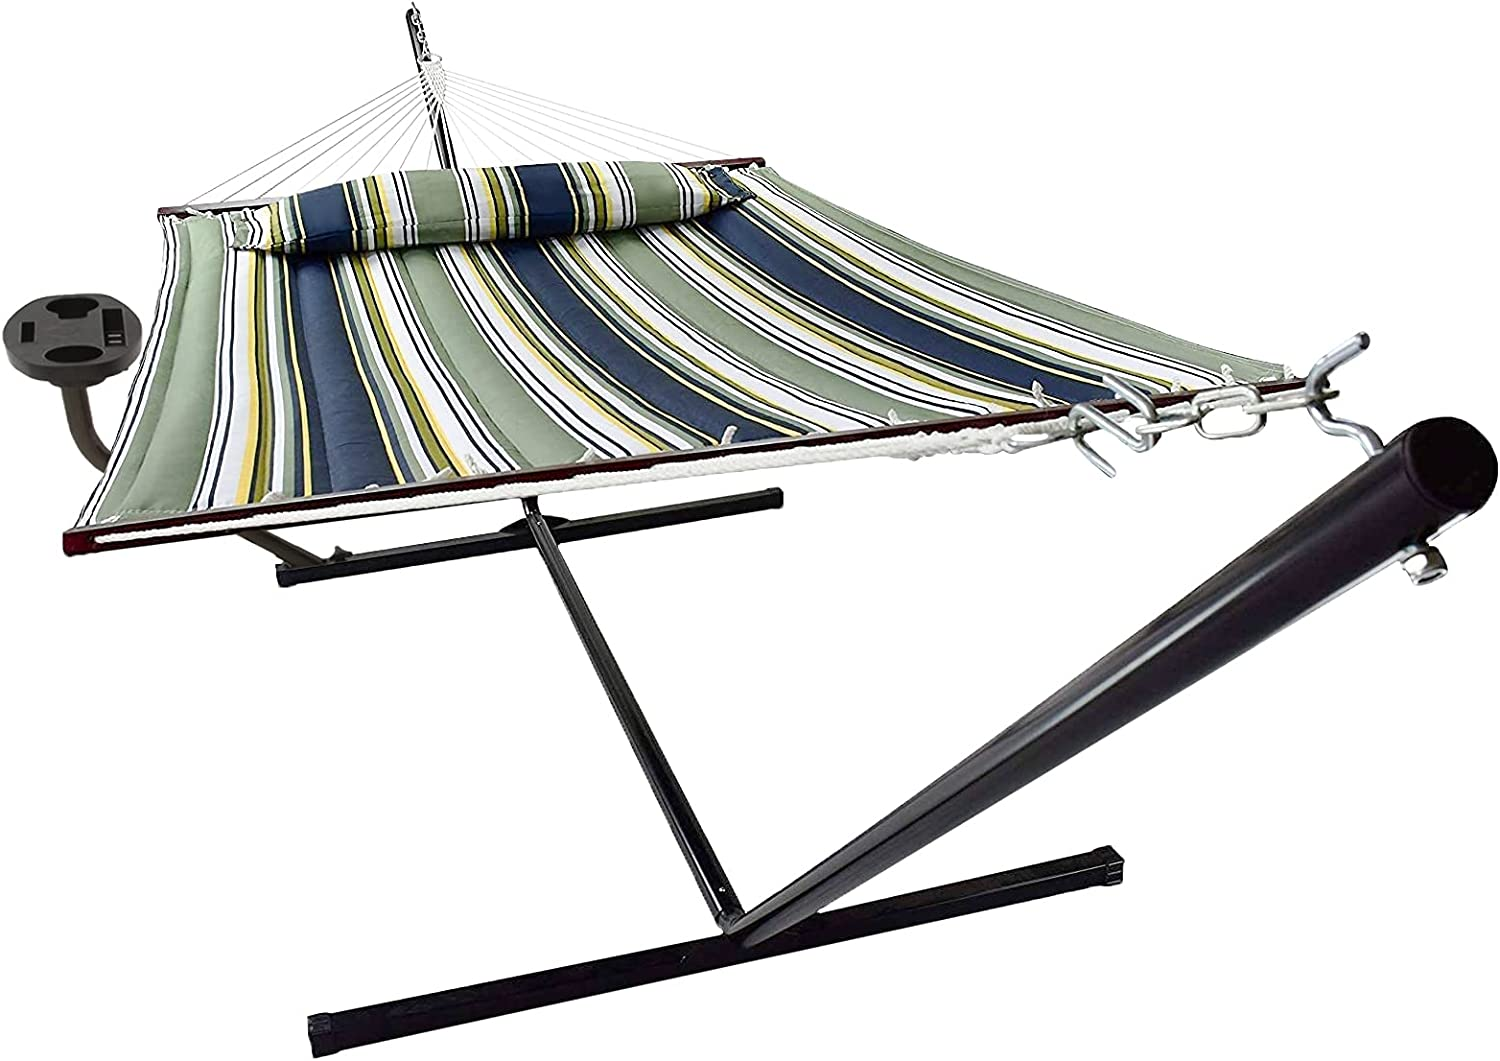 Hammock with Stand Virginia Rapid rise Beach Mall Cupholder 2 Person Pillow Detachable